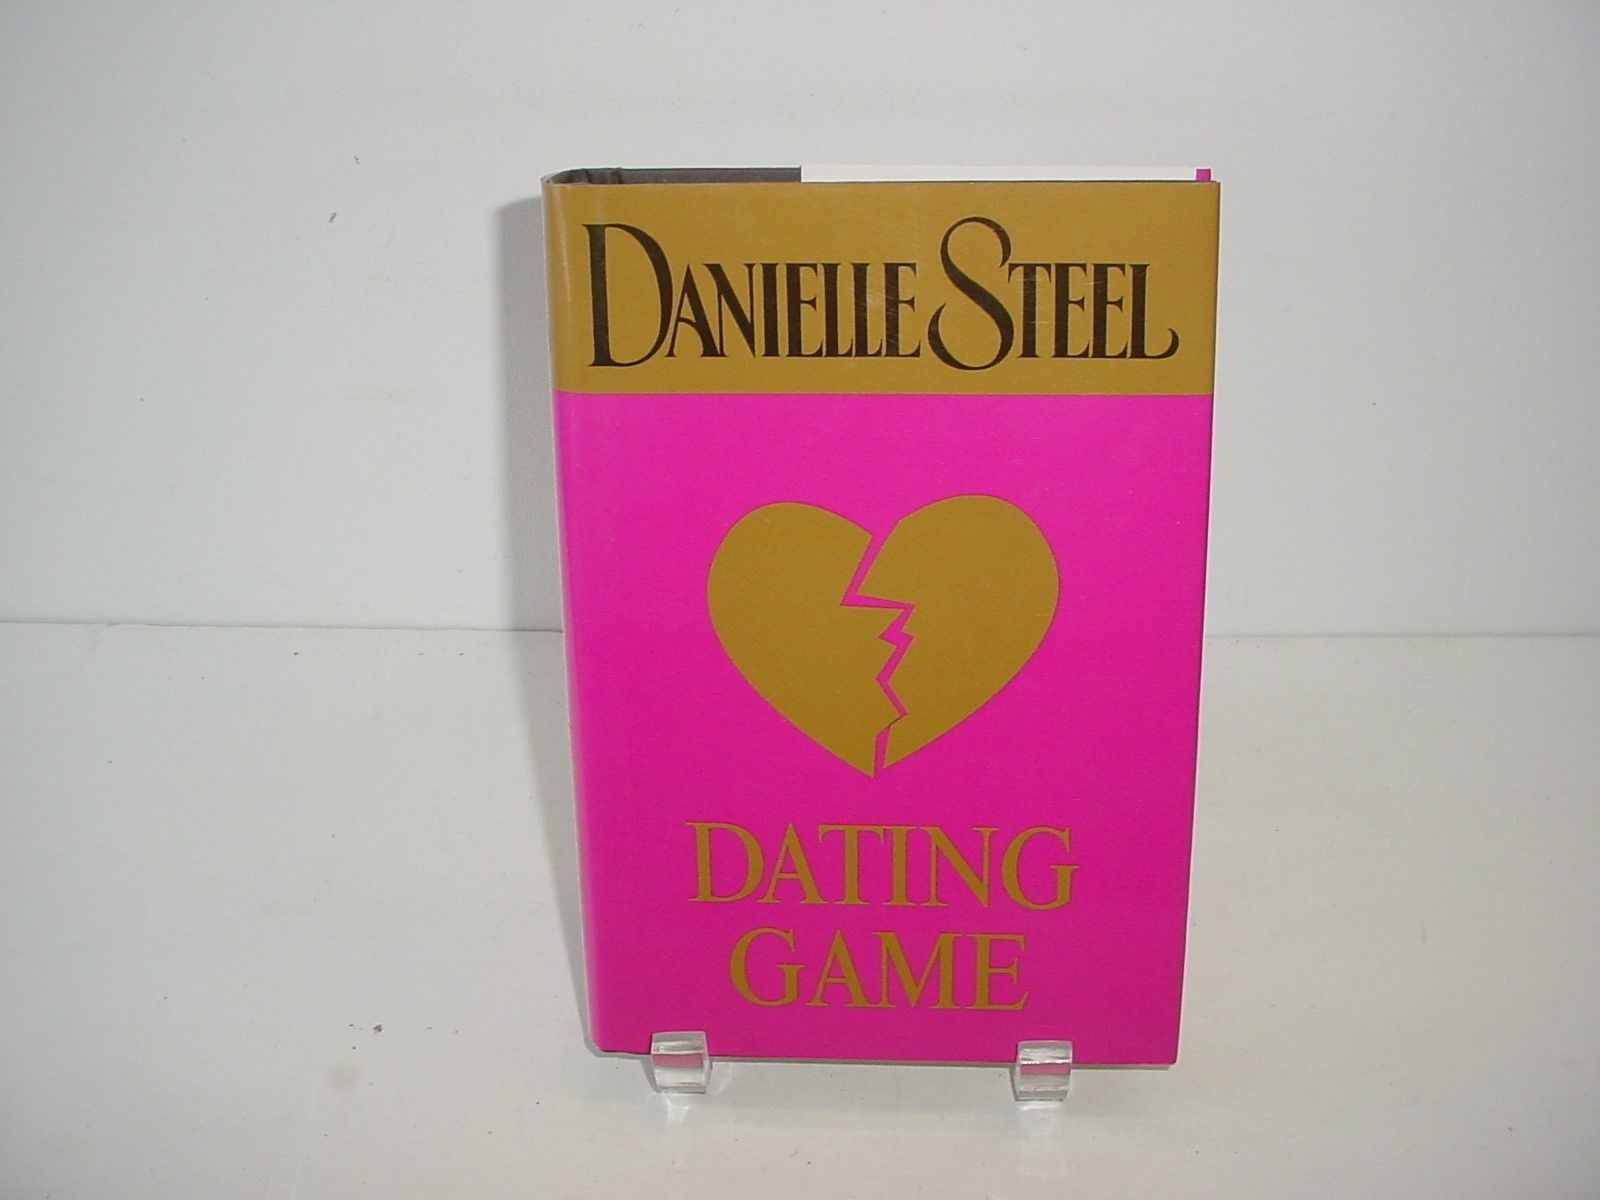 Primary image for Dating Game by Danielle Steel (2003, Hardcover) Novel Book